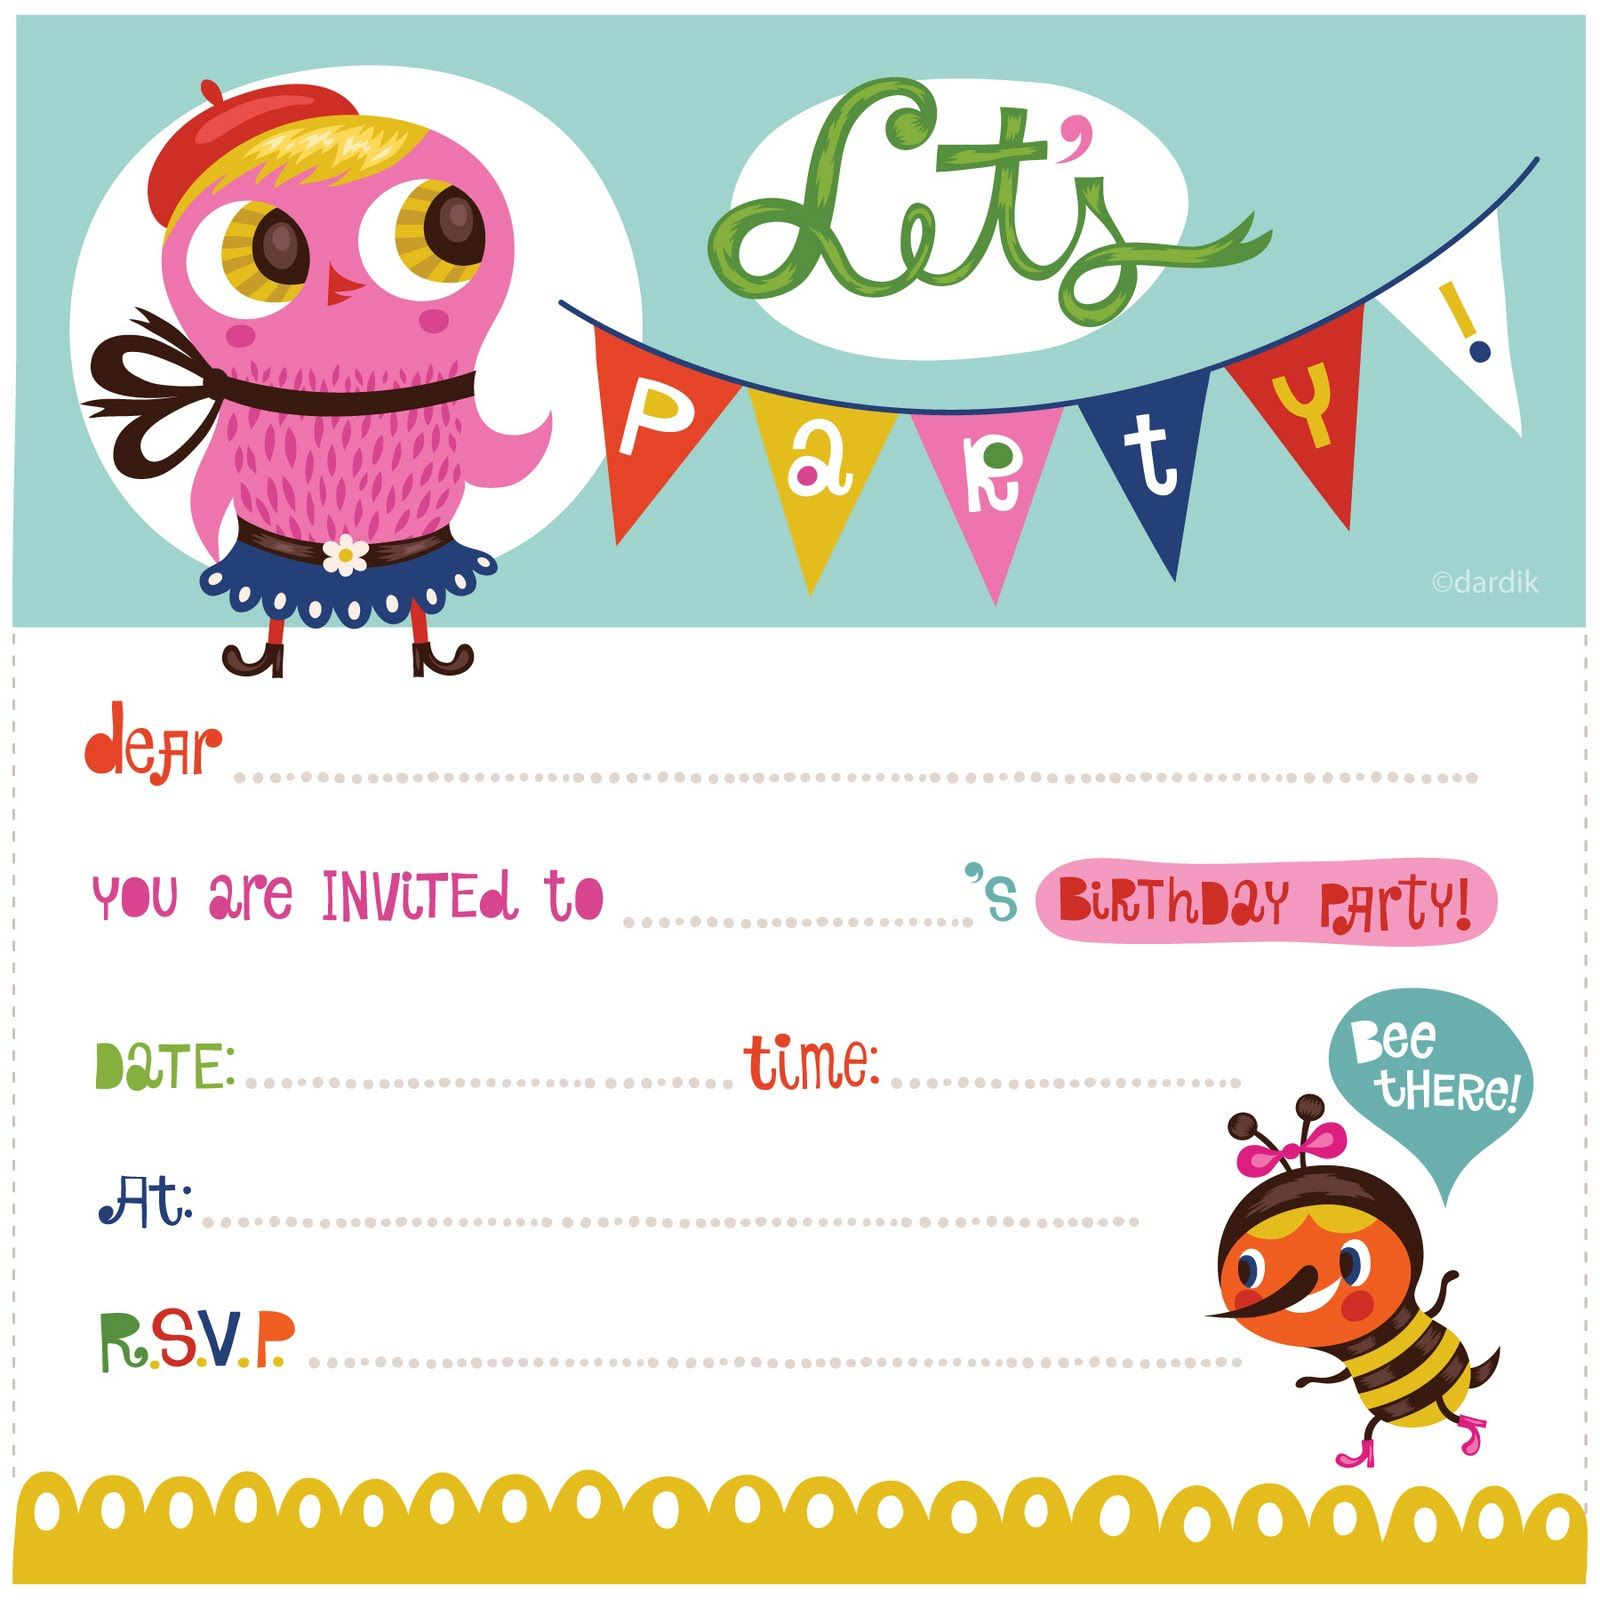 Birthday Party Invitations Printable For Kids Free | invitations ...